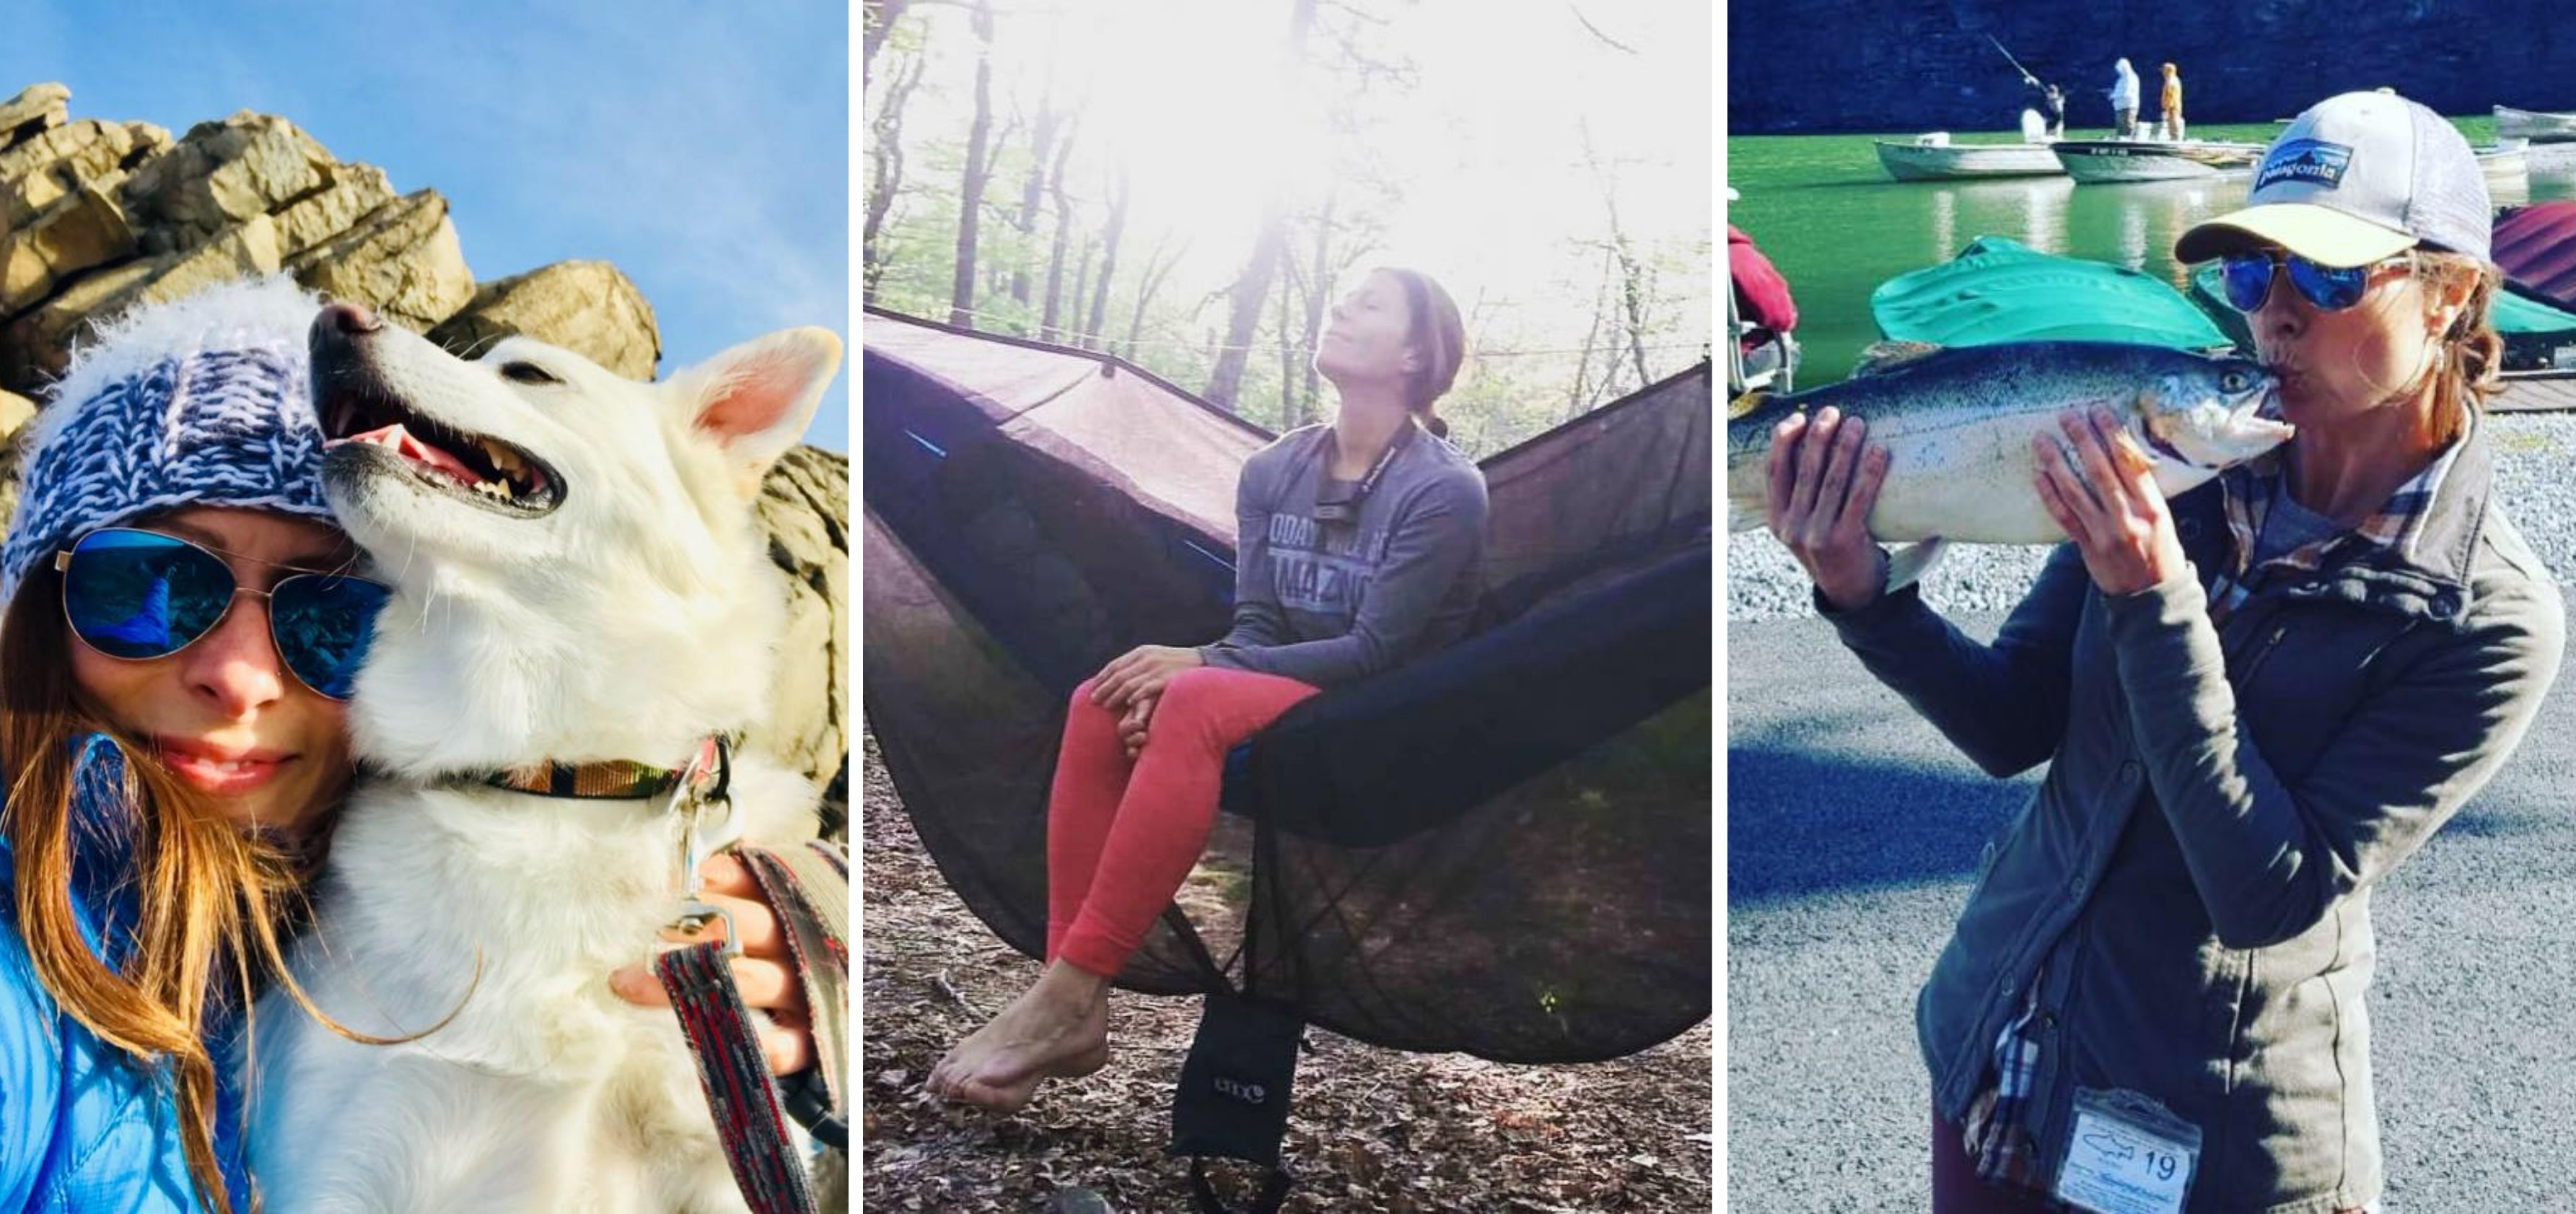 Leah Naso enjoys the outdoors with her dog, on a hammock, fishing in a lake.